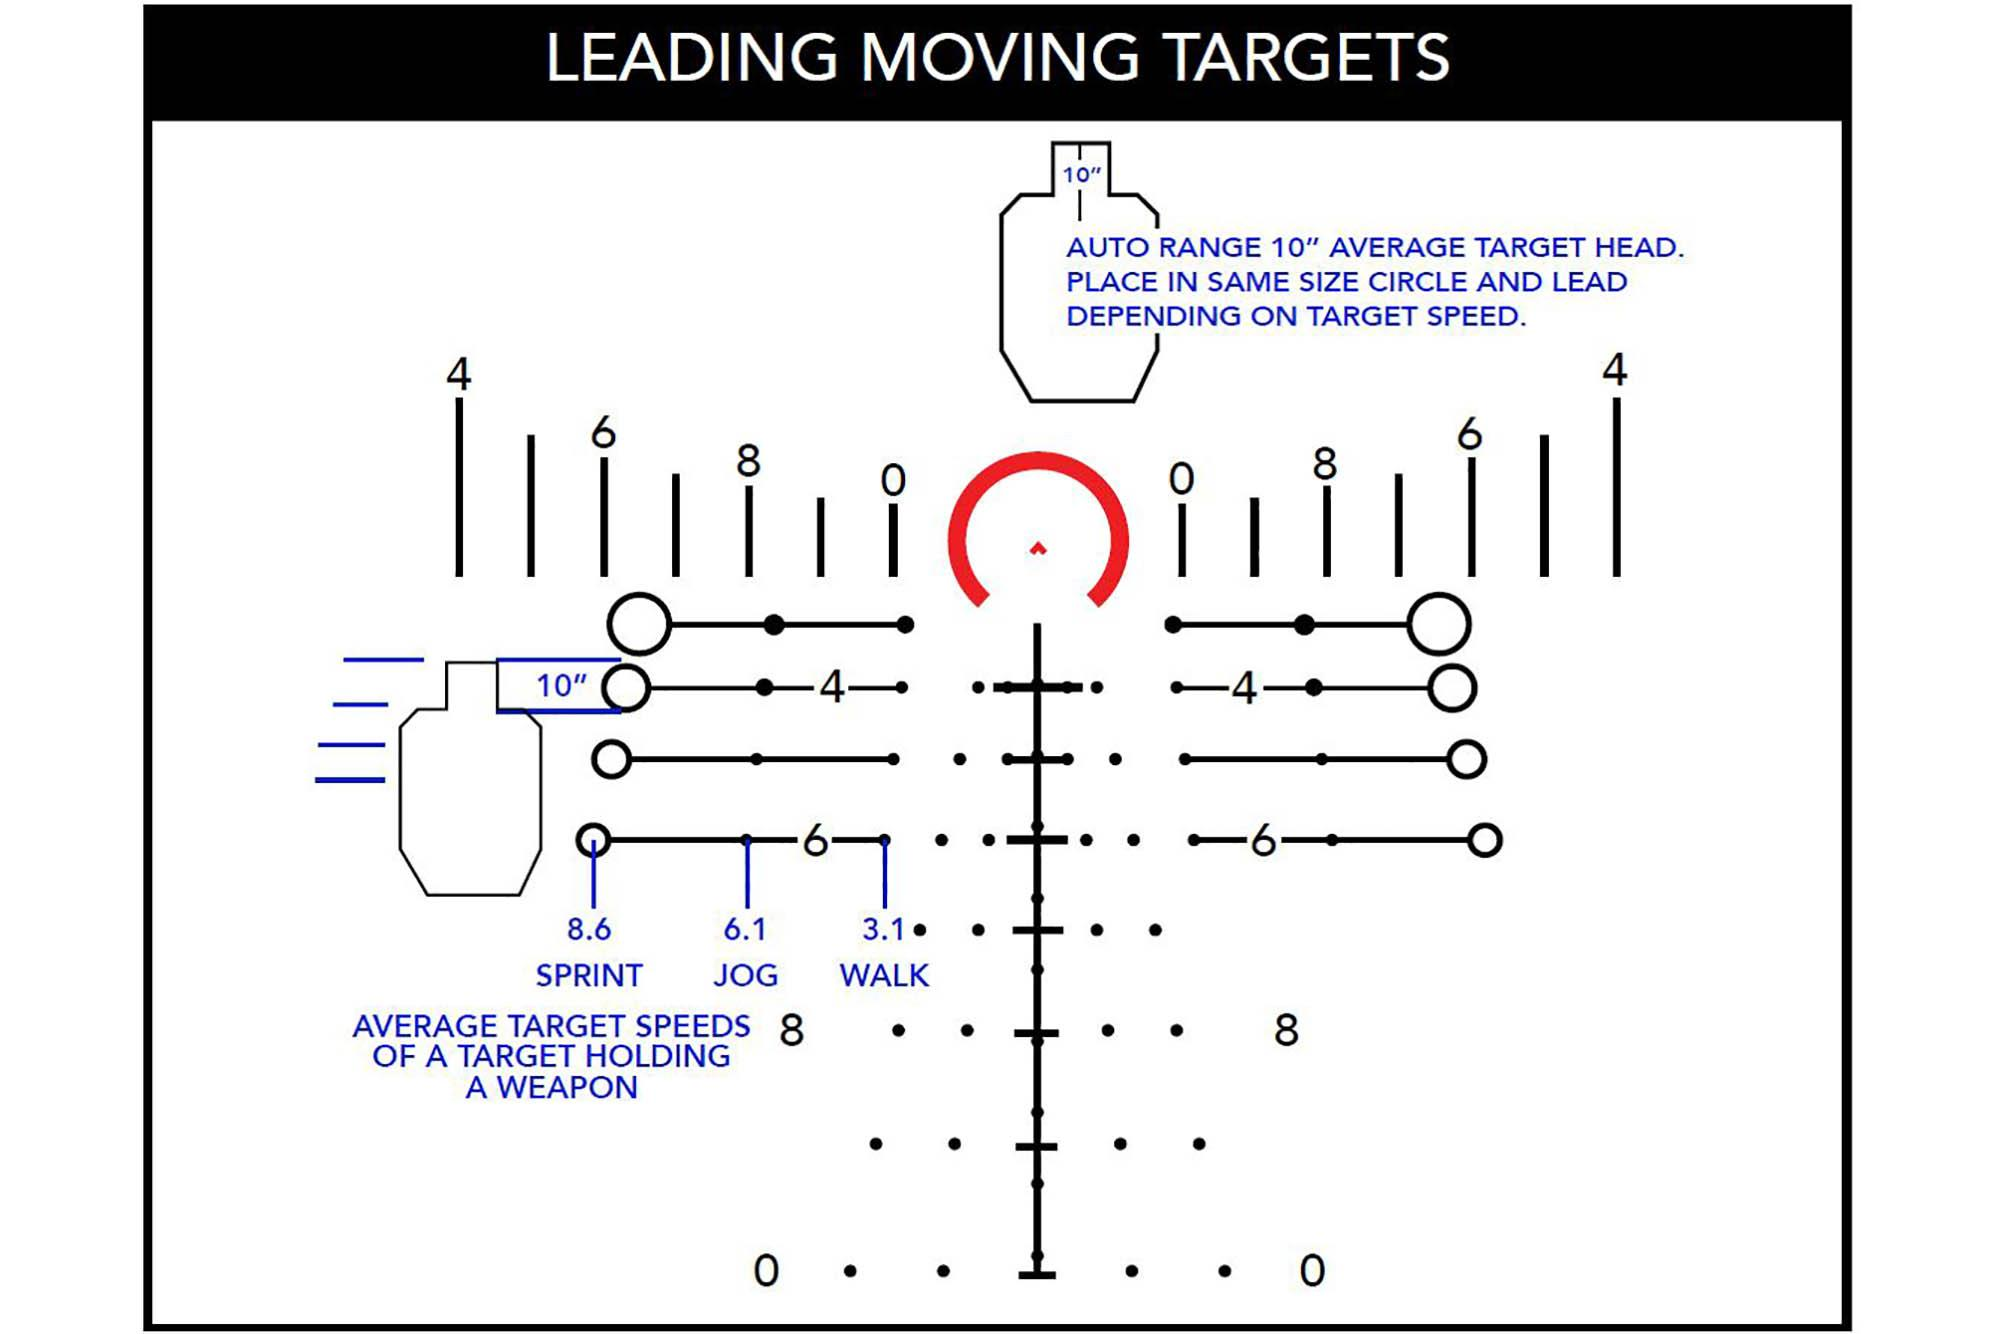 Primary Arms 3-18x50mm ACSS HUD DMR 5.56 reticle moving target lead detail